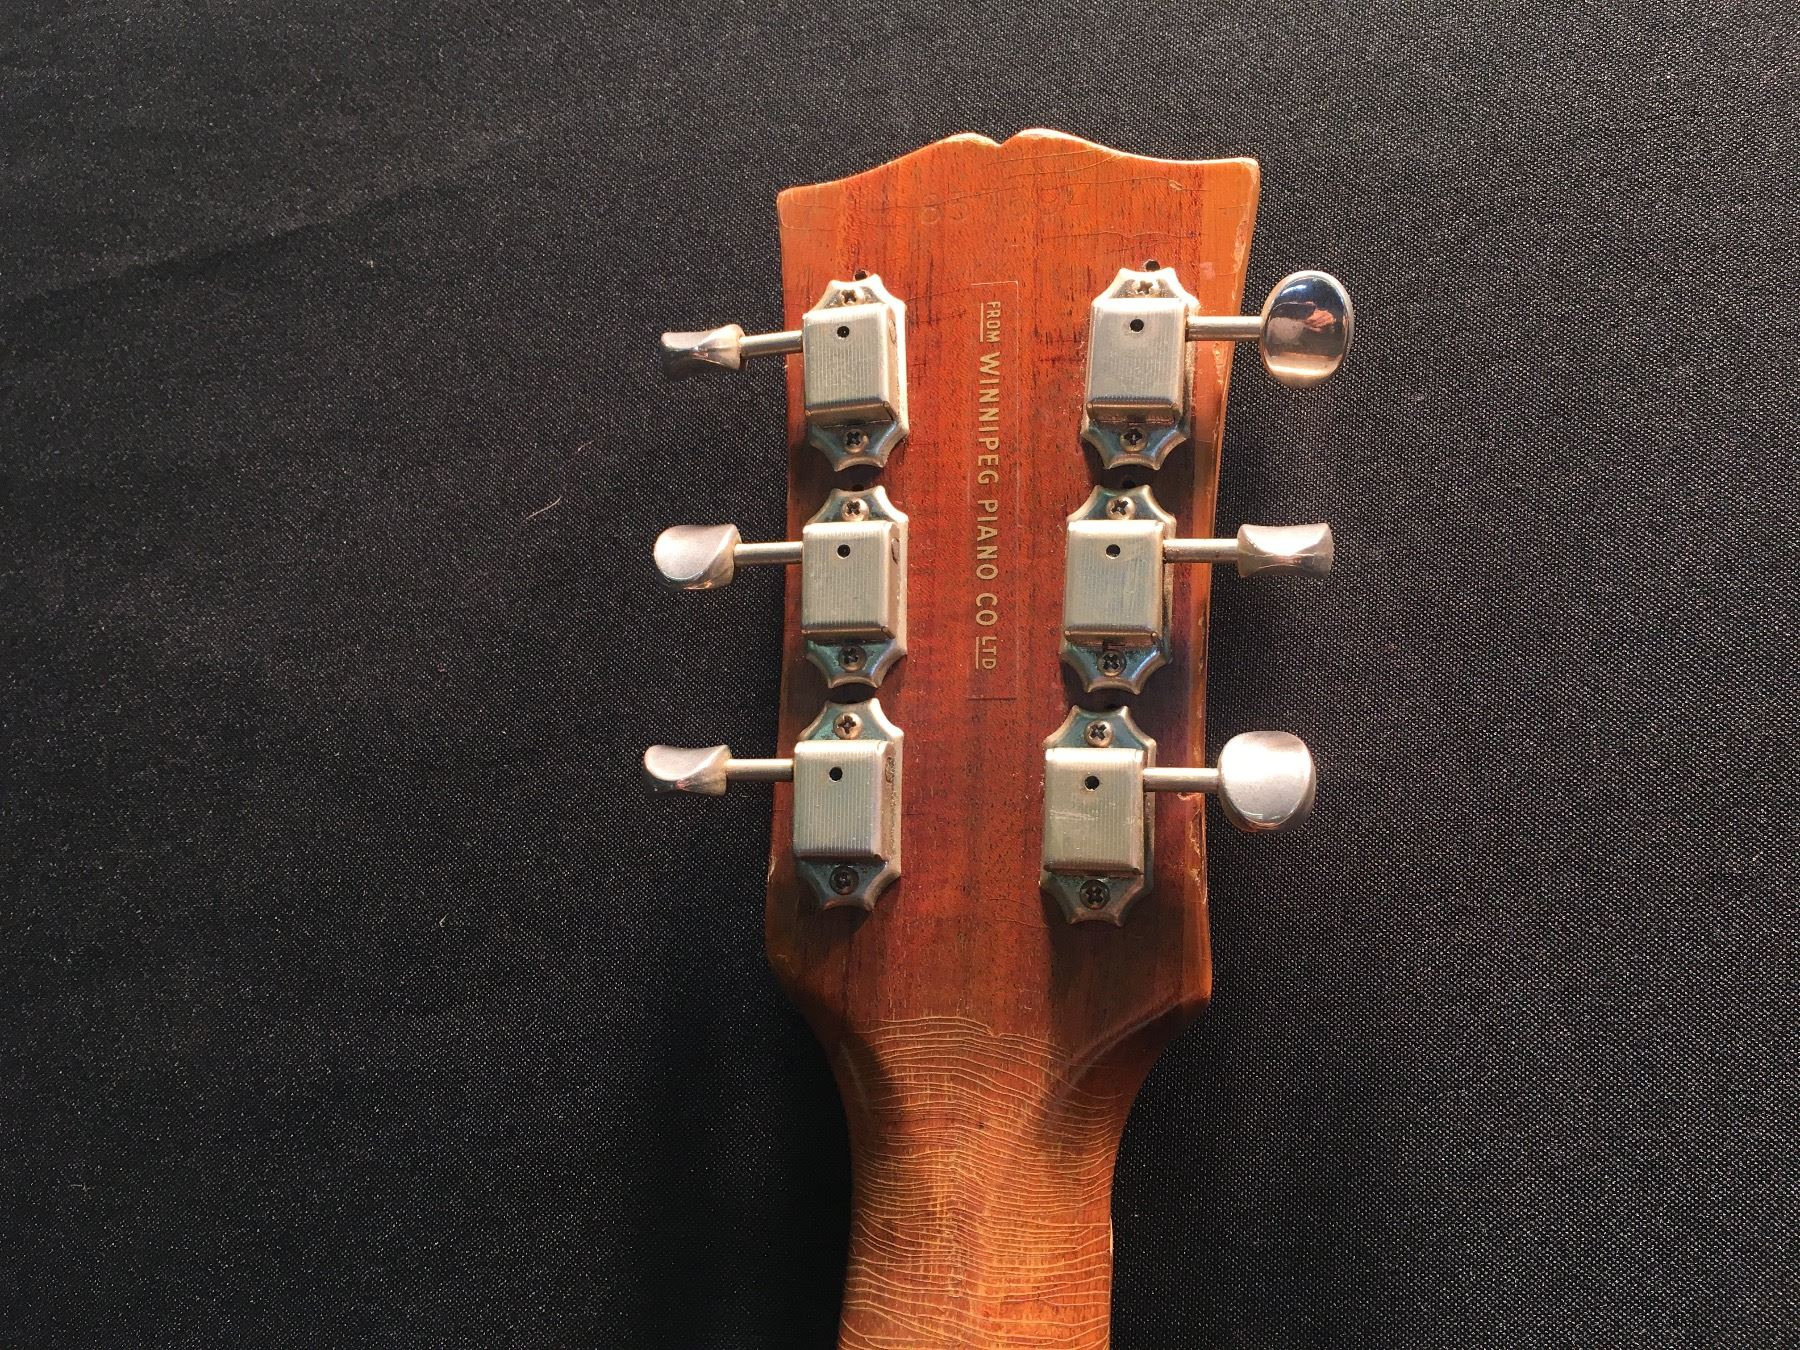 Gibson guitar serial numbers and value